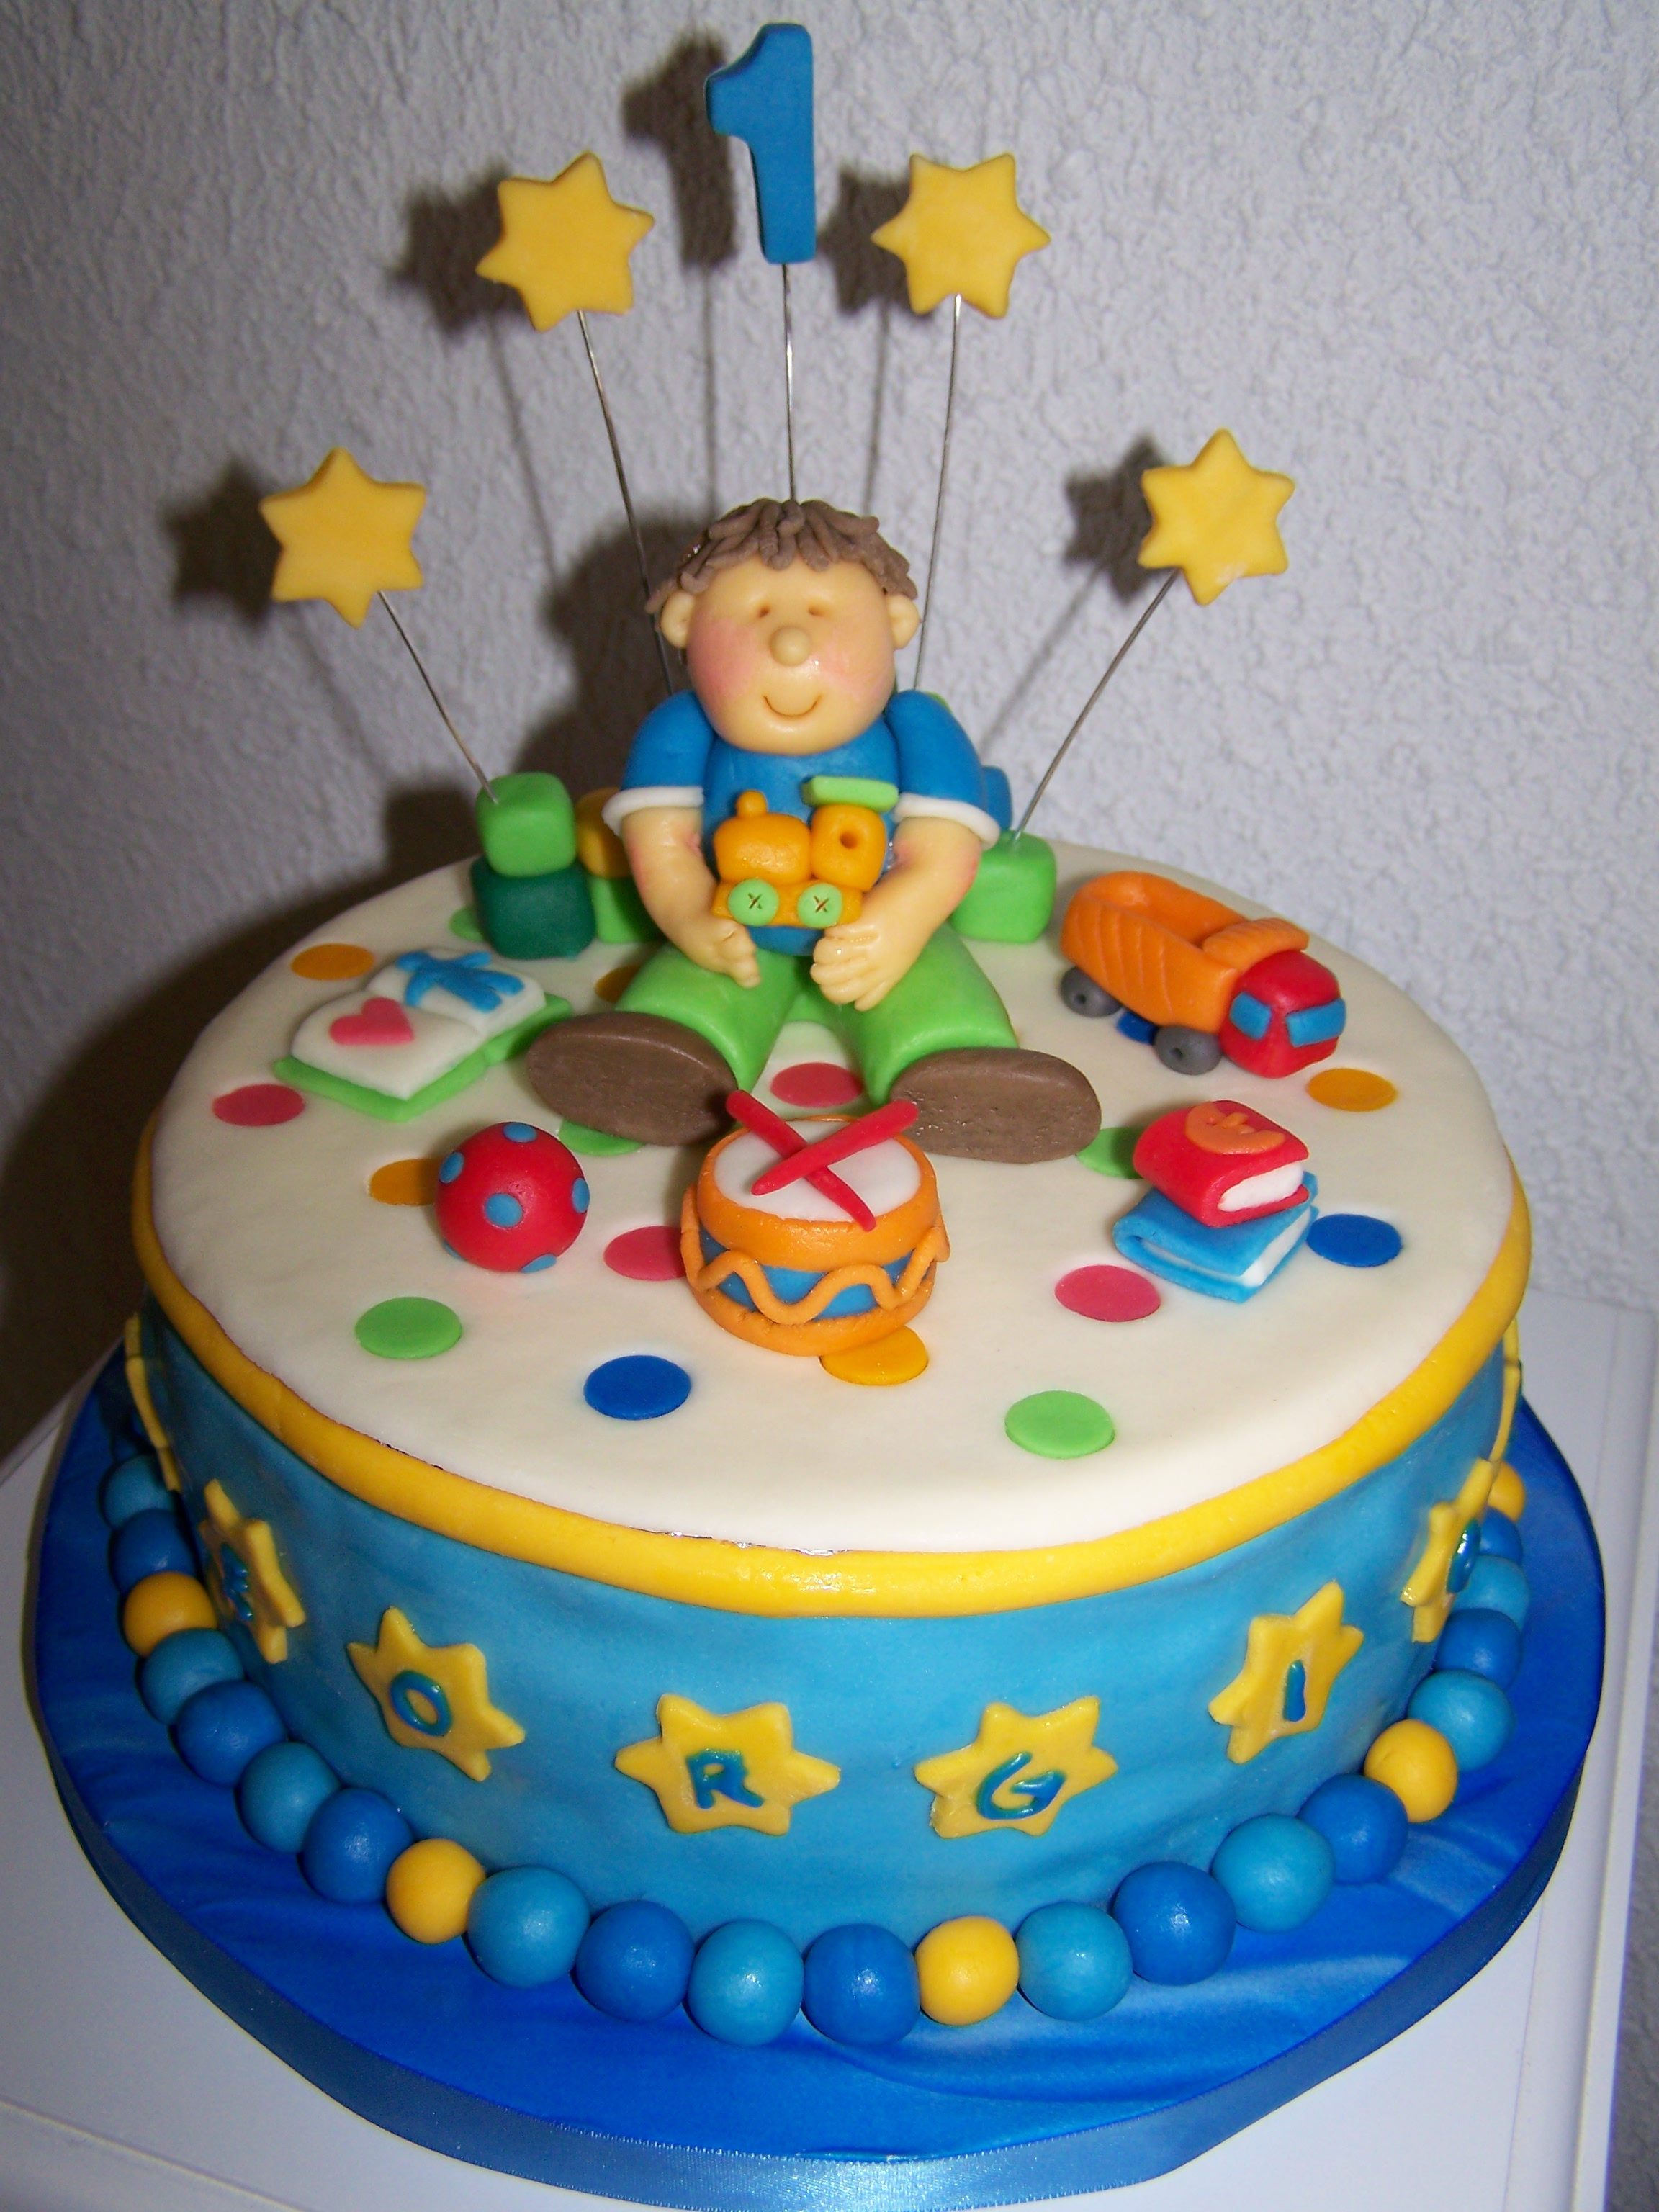 4 Bilder 1 Wort Kuchen Kindertorte Cakes For Fun